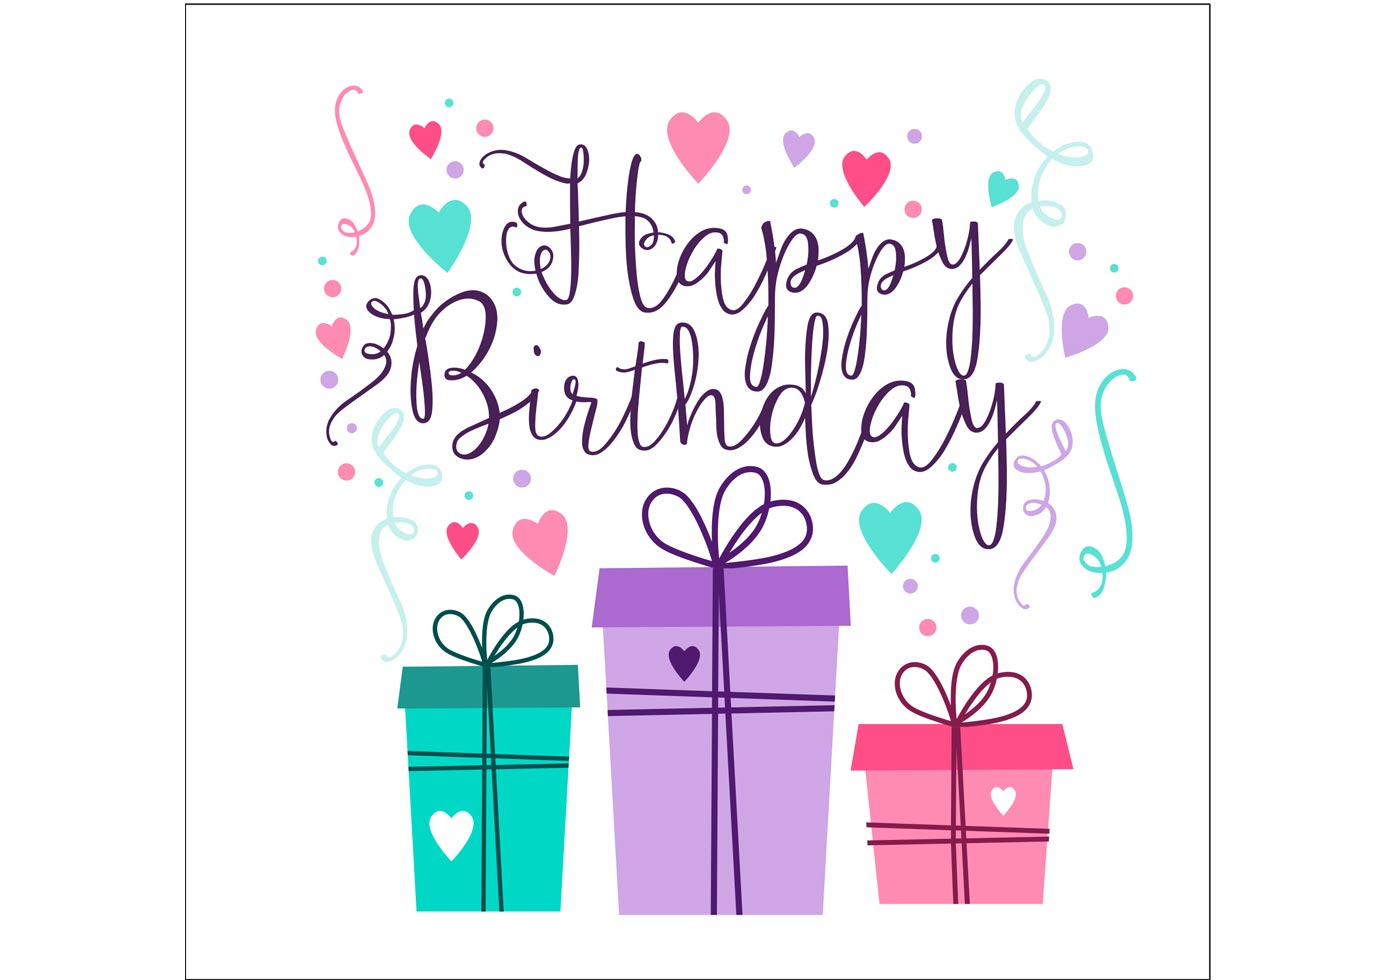 Birthday card design download free vector art stock - Birthday cards images free download ...